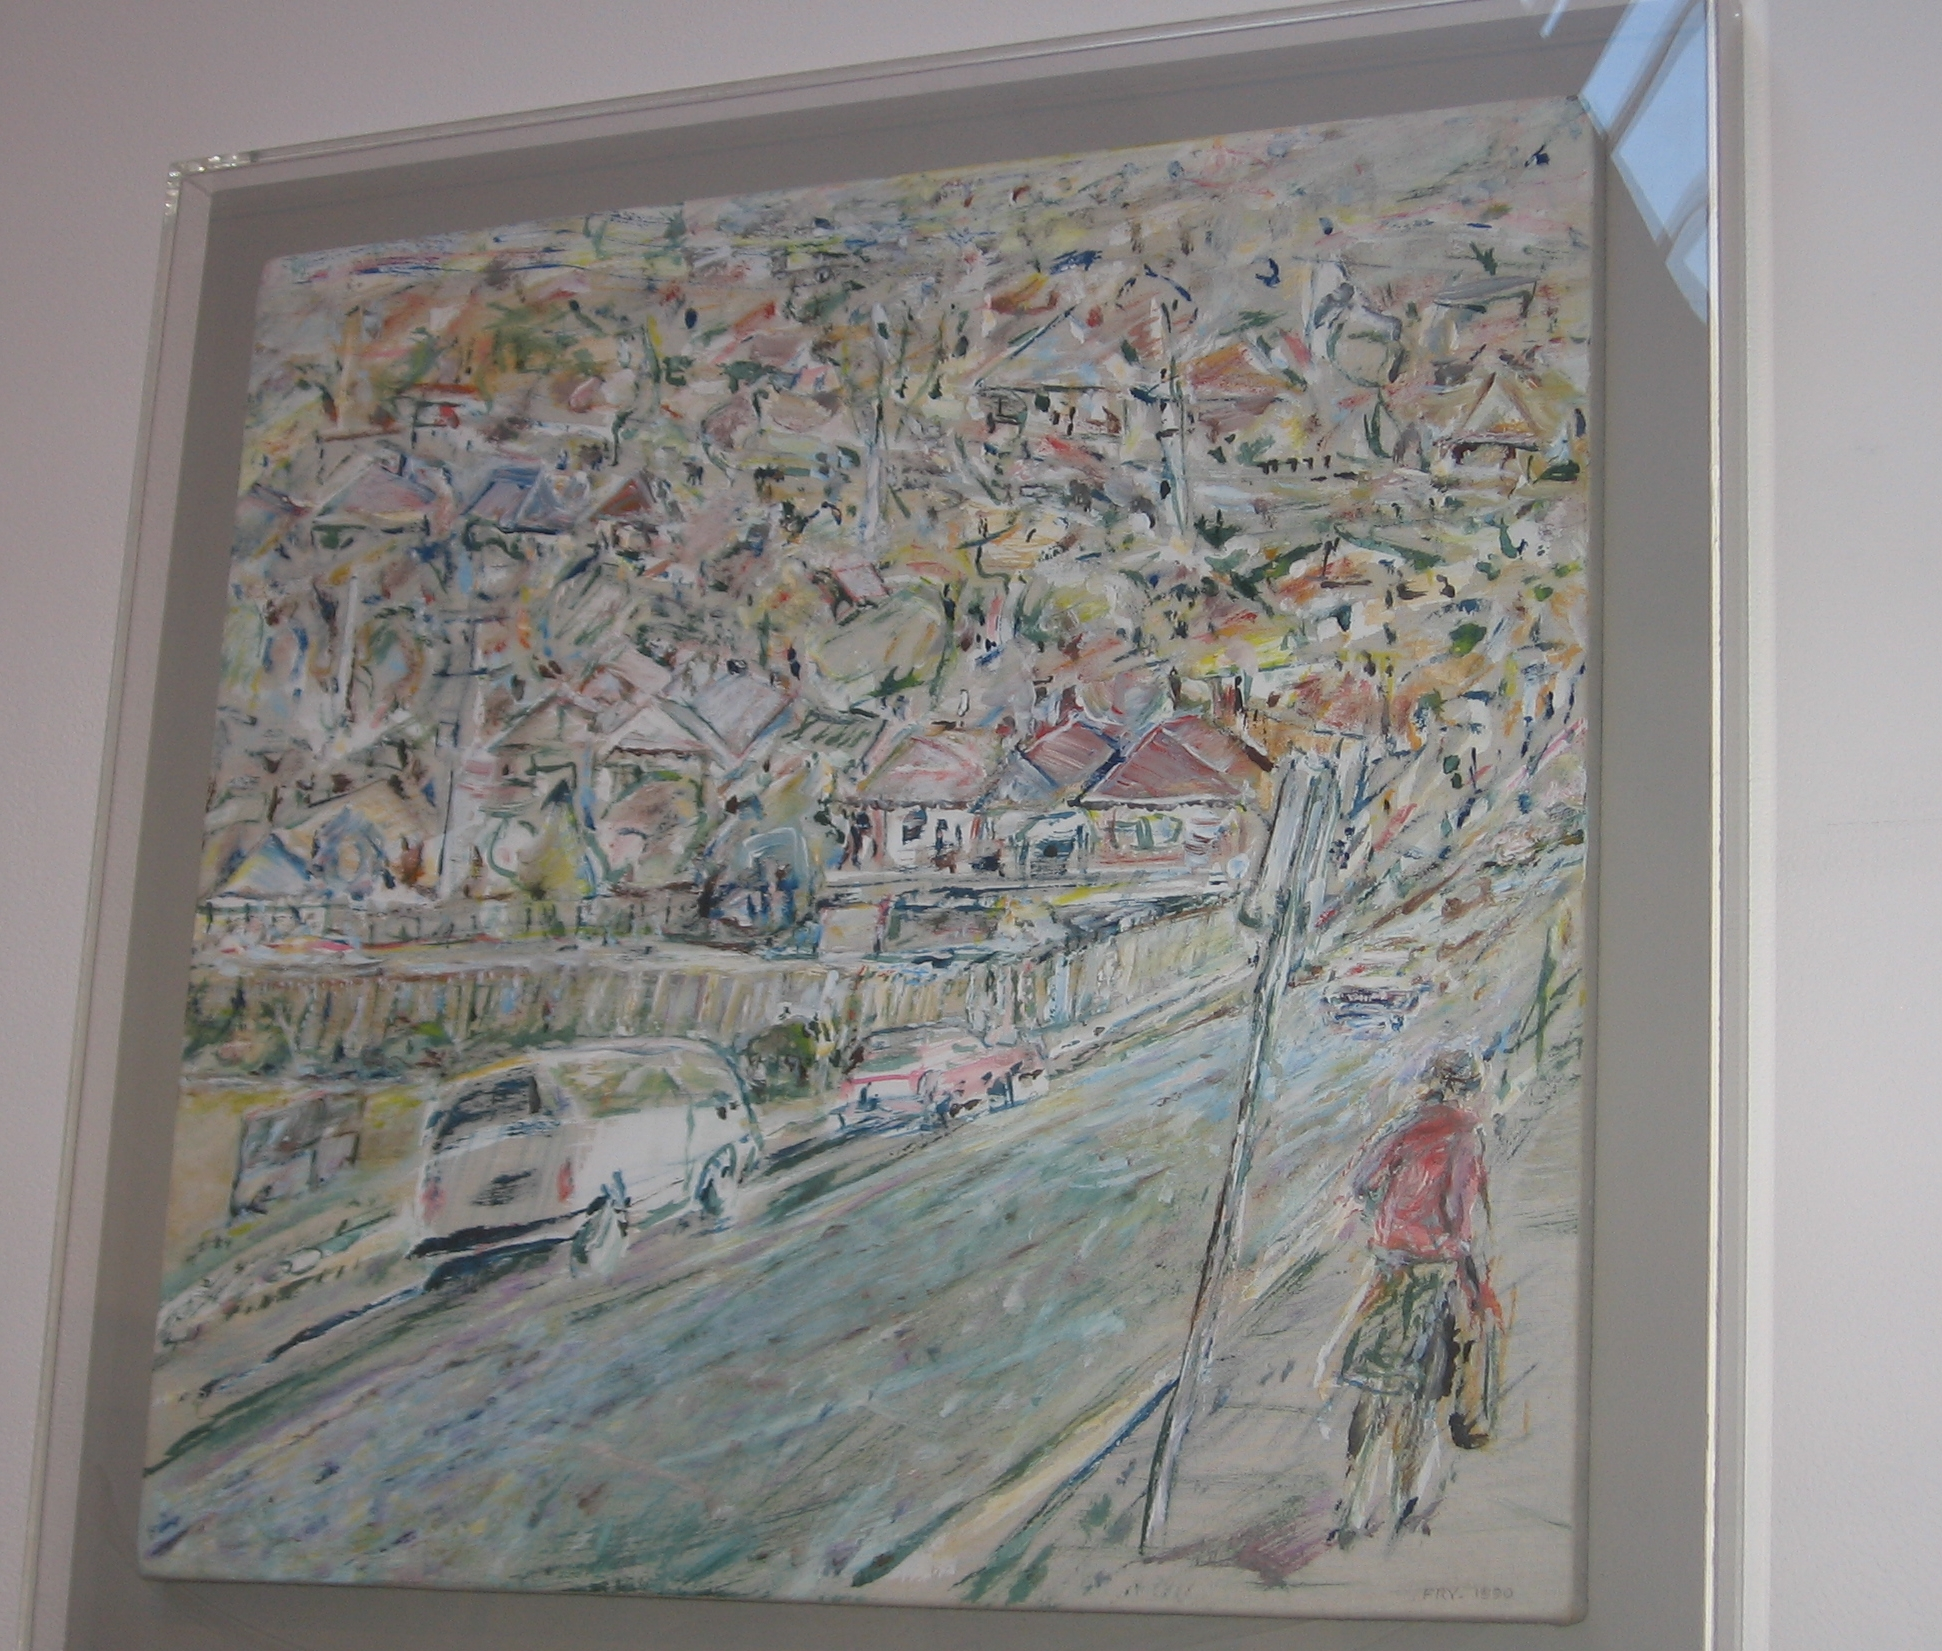 Hill Street, 1990, acrylic on cotton duck, 54 x 56 cm